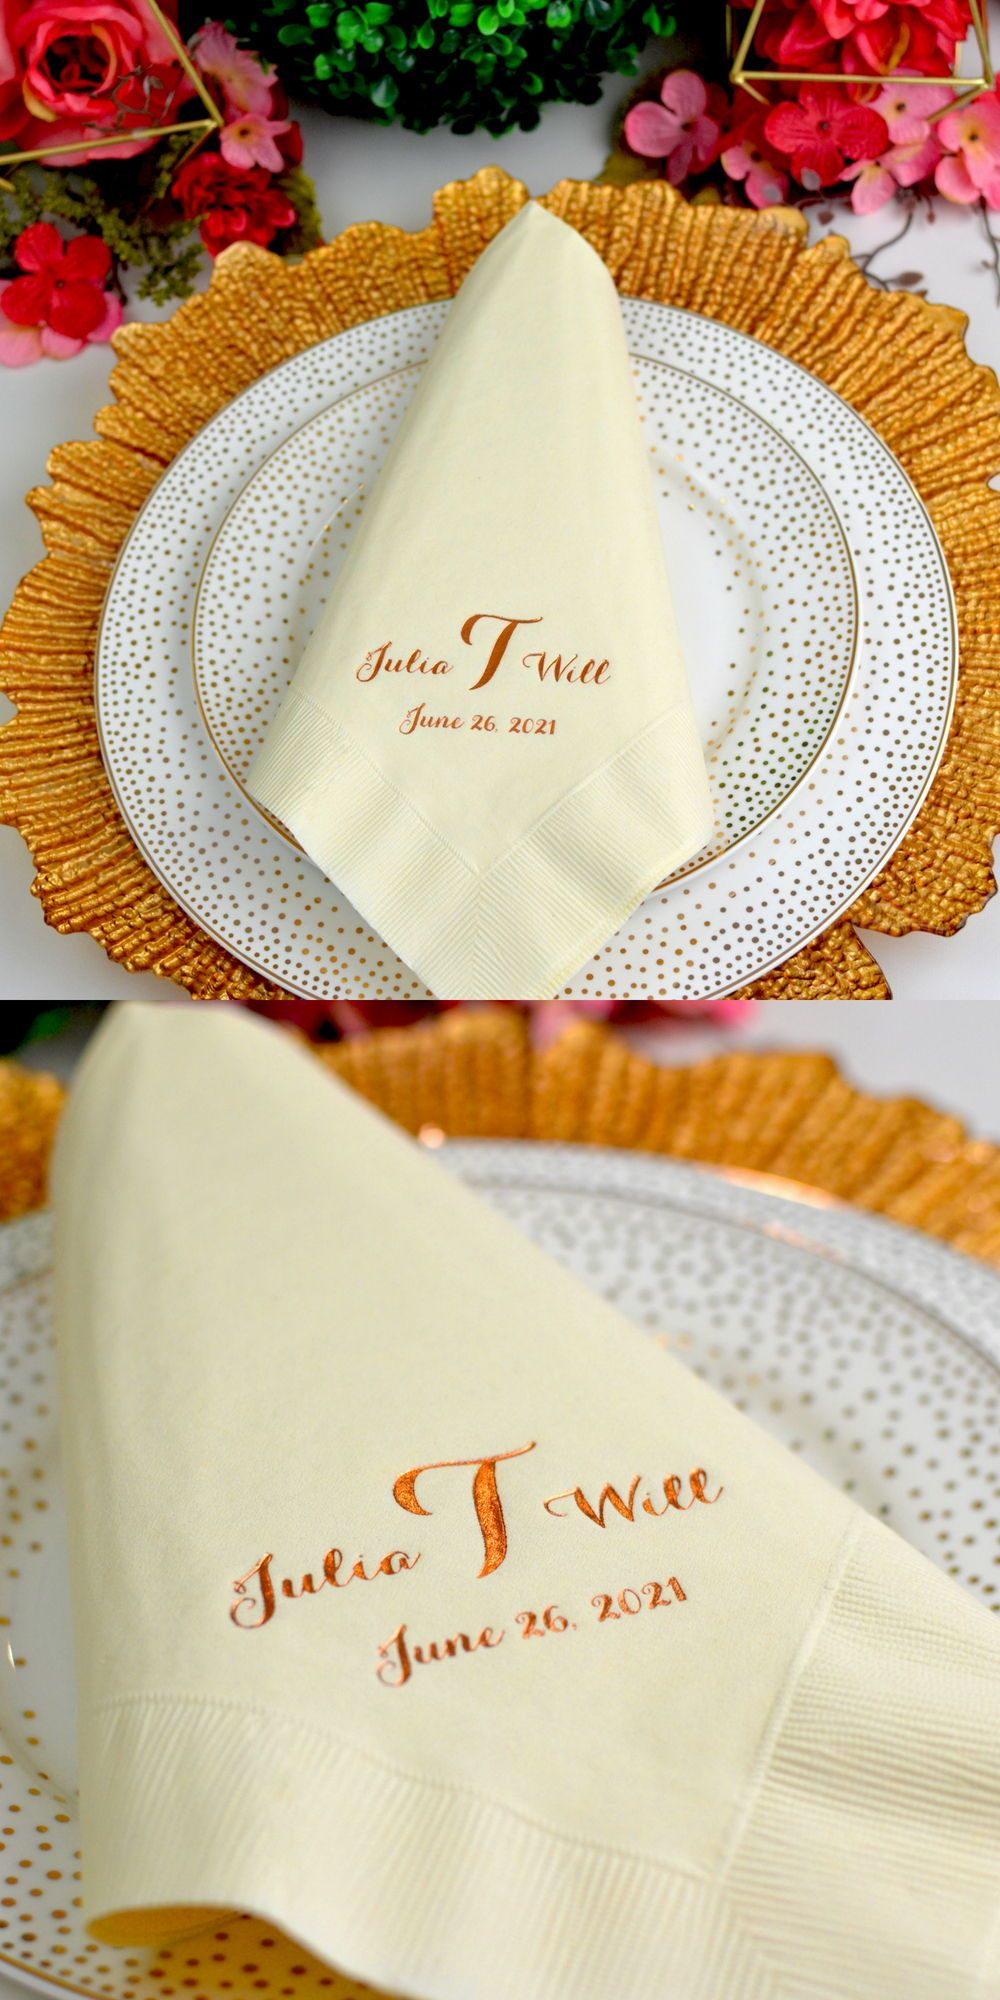 Wedding Dinner Napkins Personalized 3 Ply Paper Ecru White In 2020 Wedding Dinner Napkins Wedding Napkins Wedding Dinner